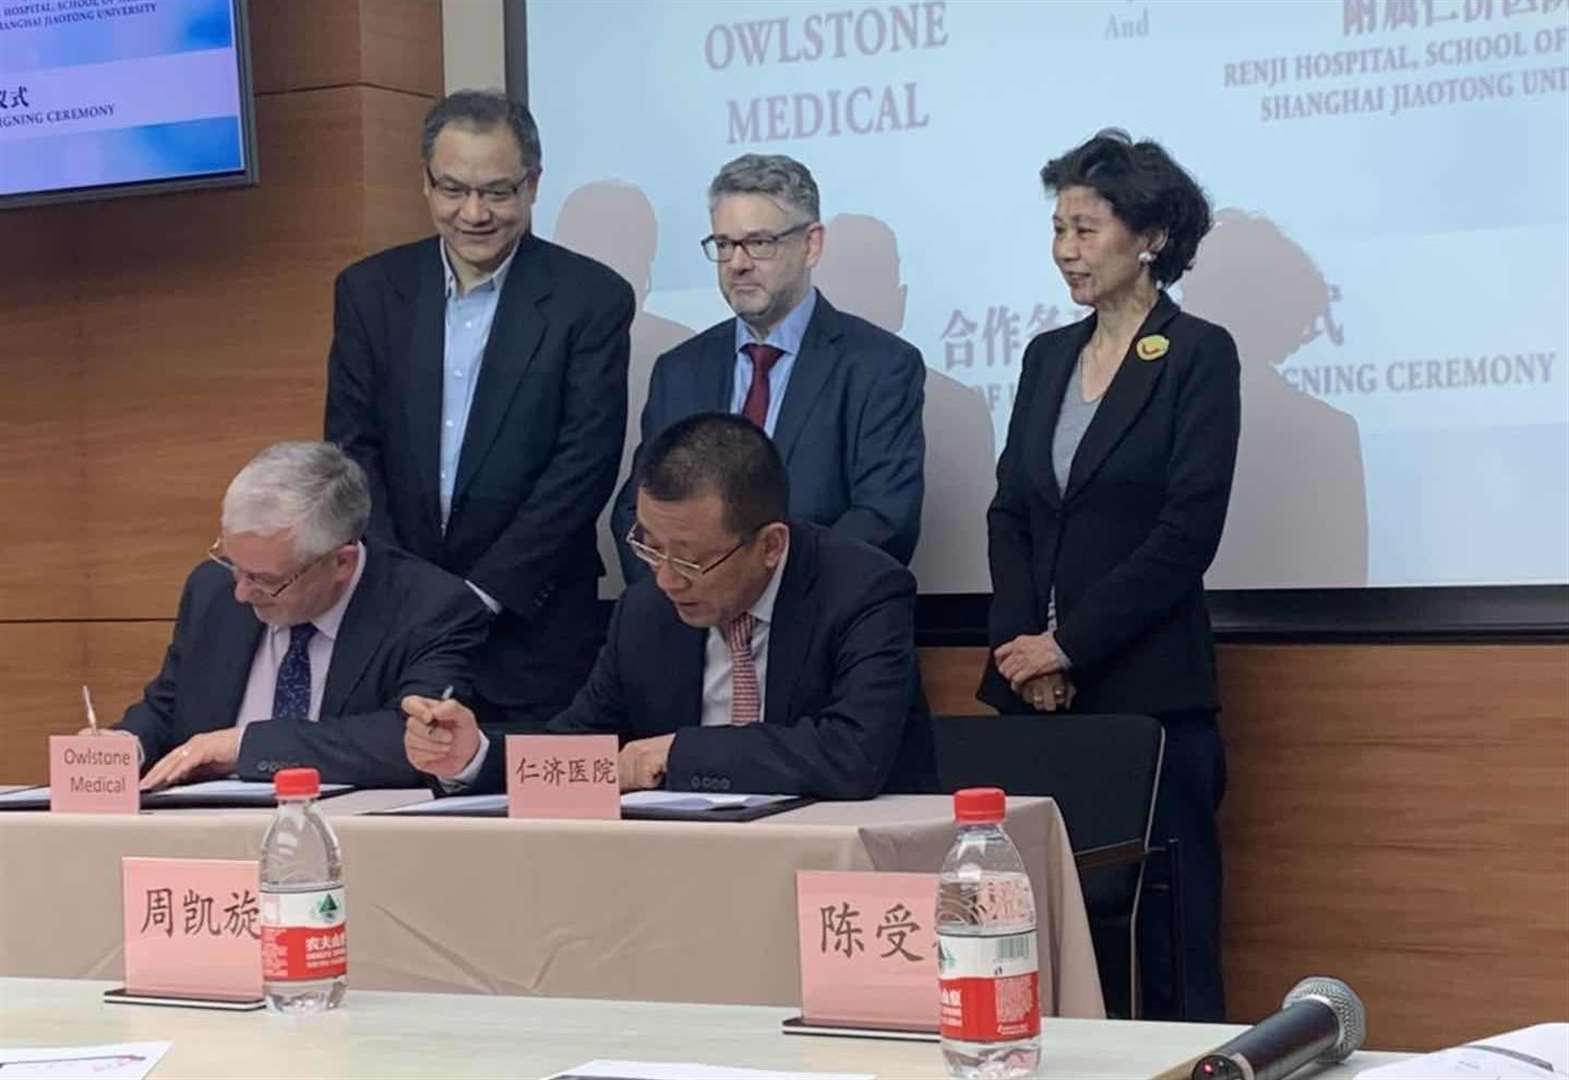 Owlstone Medical expands into China with Shanghai Renji Hospital lung cancer trial